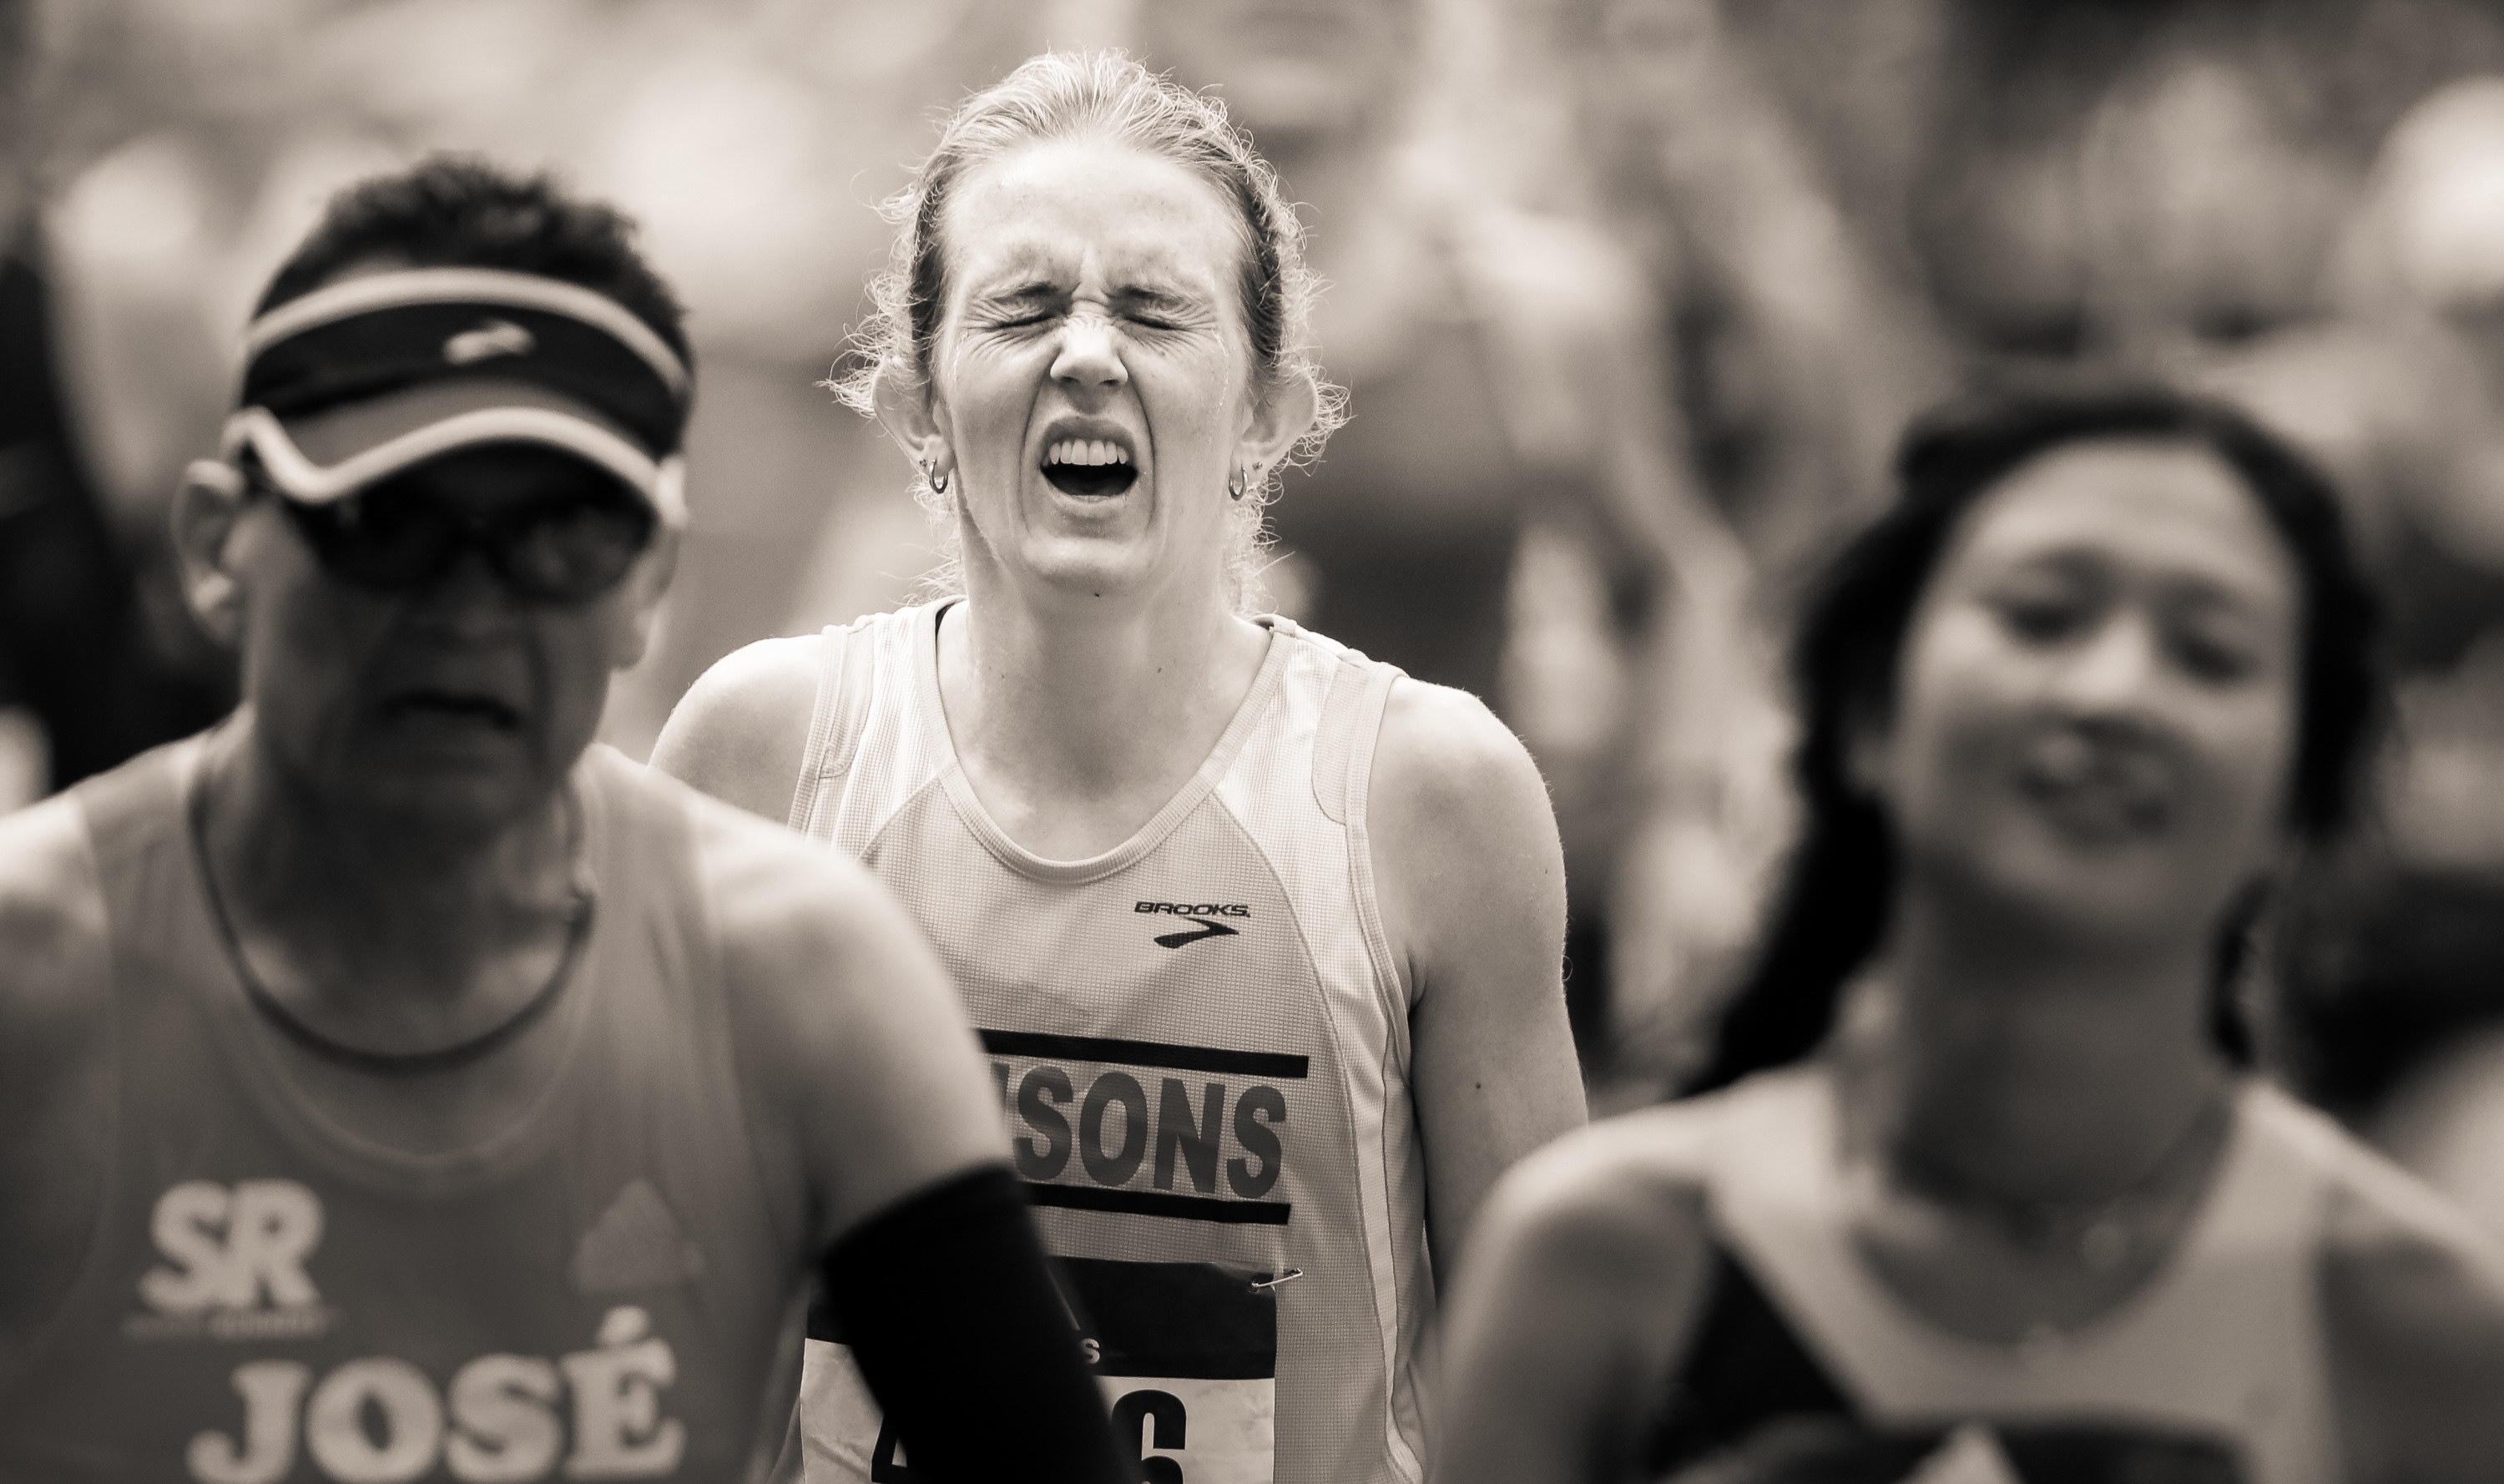 A woman grimaces through a crowd as she crosses the finish line